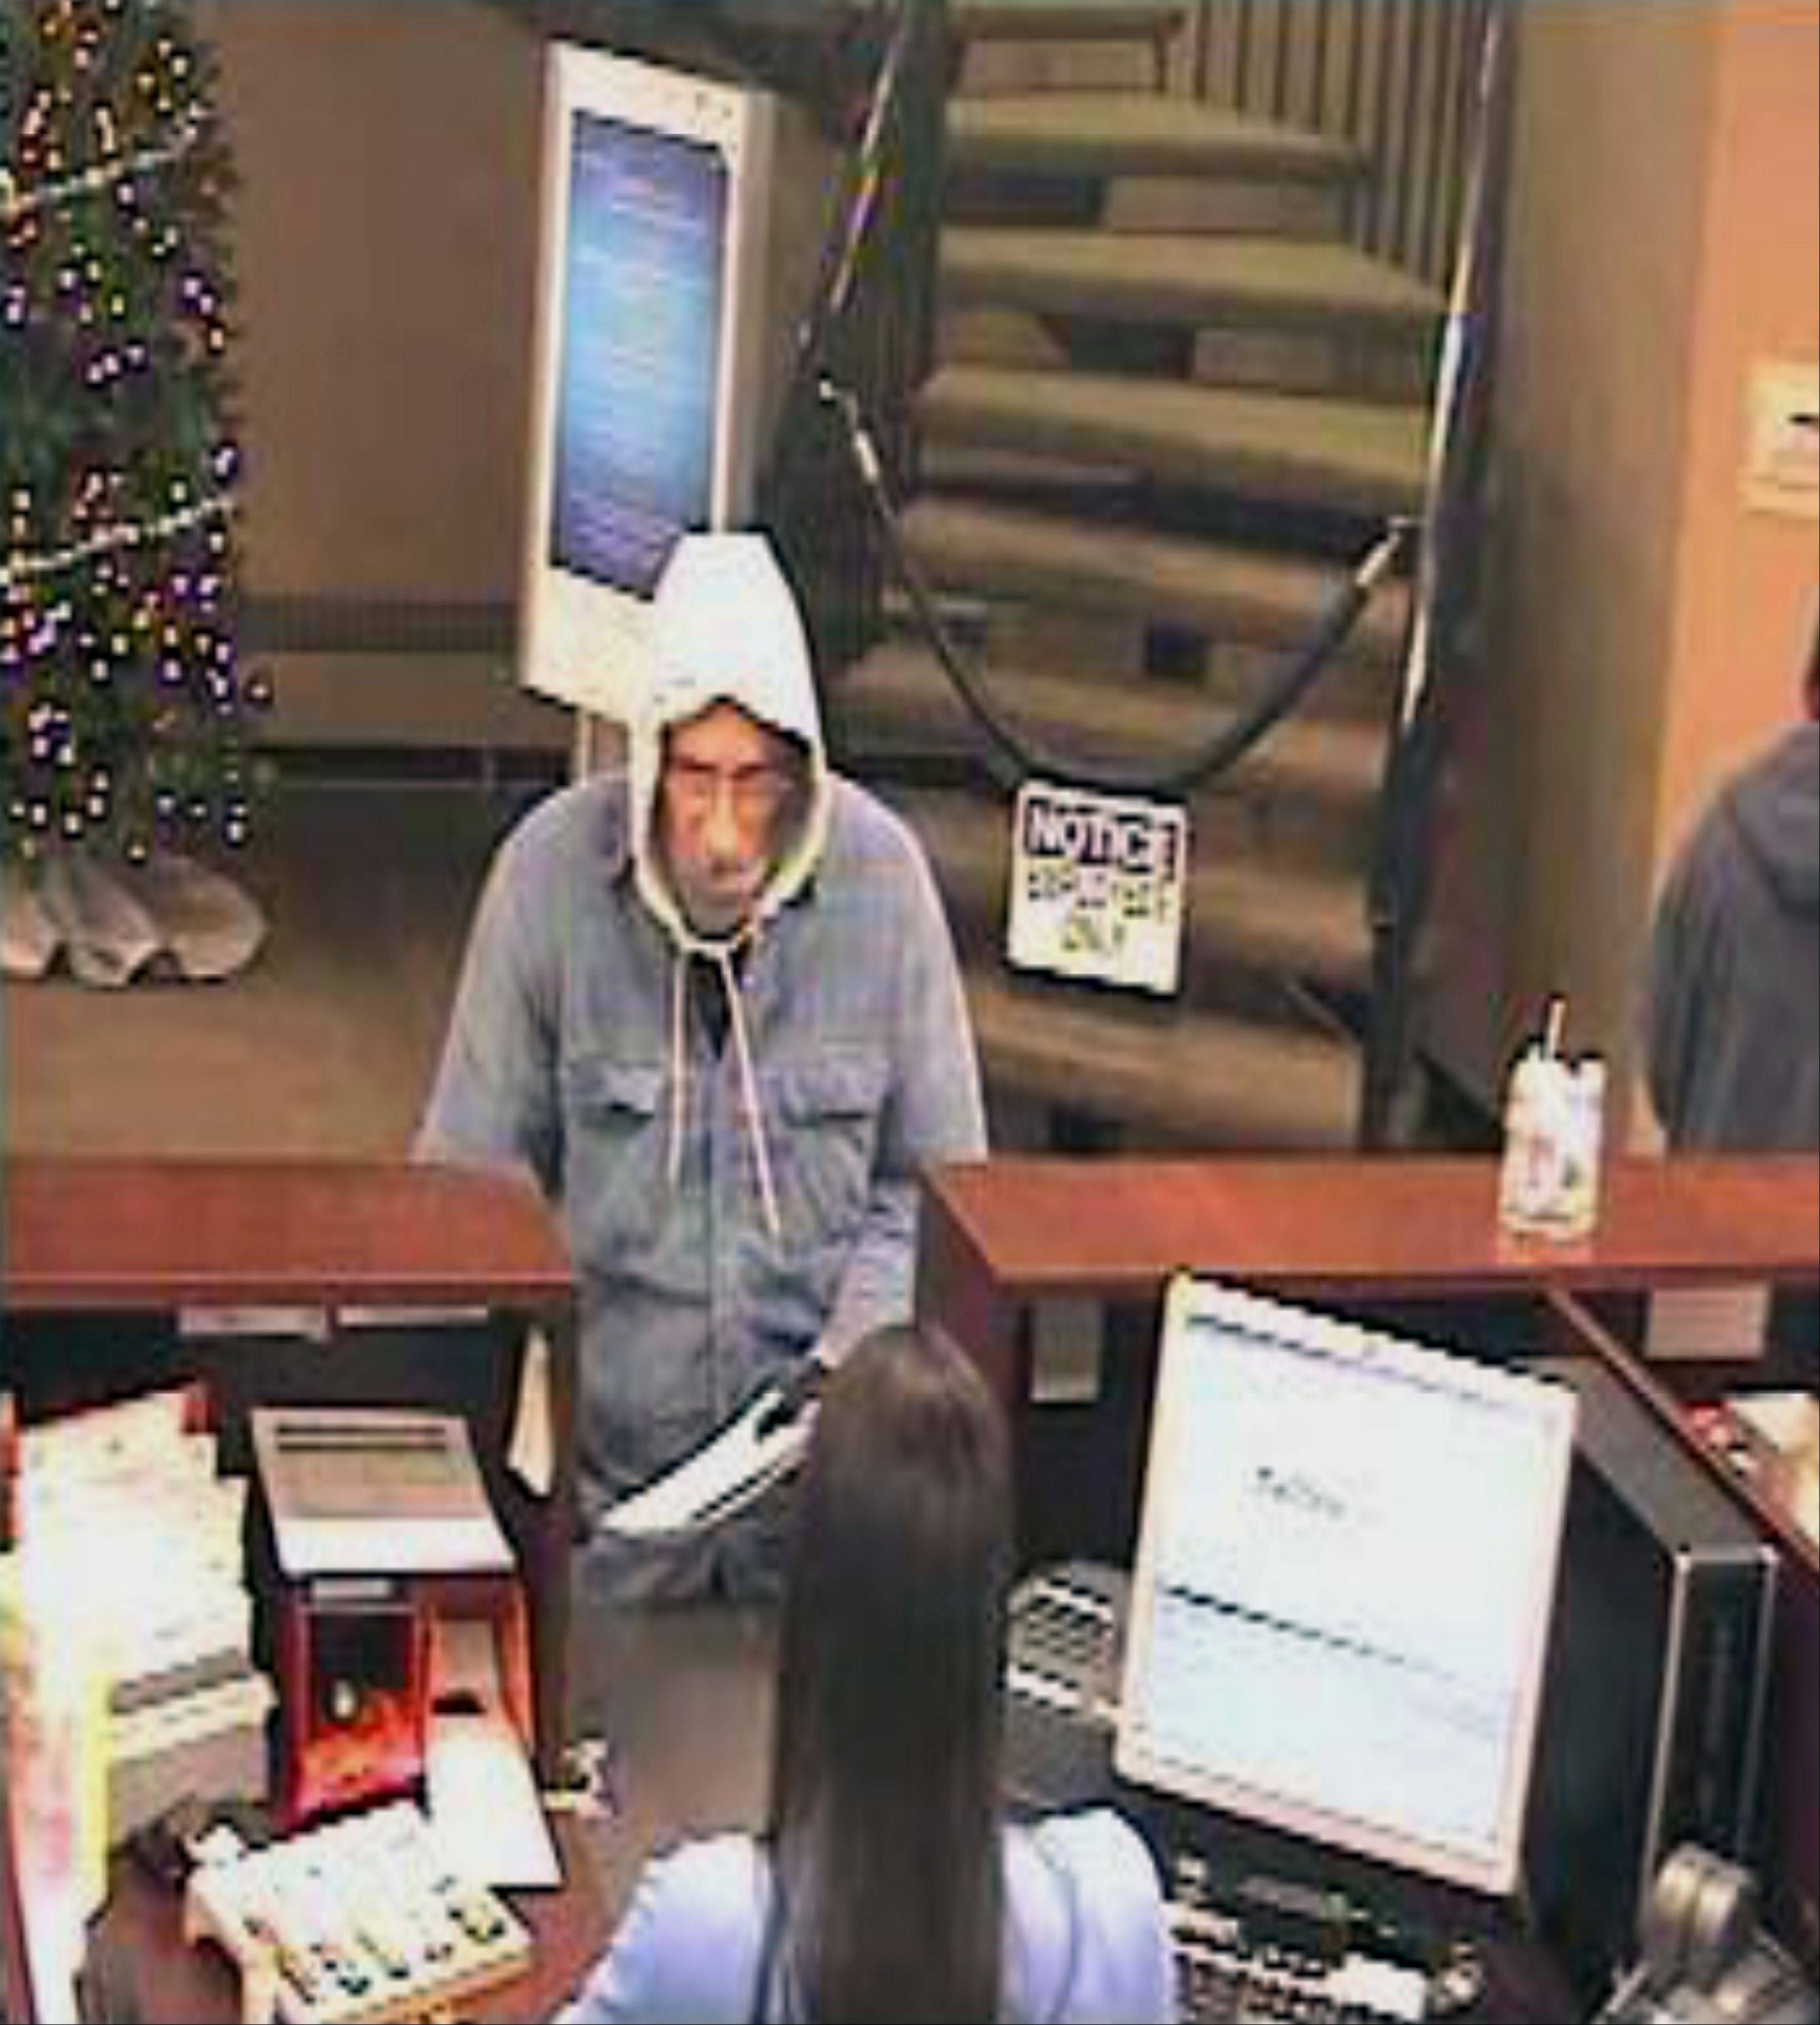 Police and FBI officials are searching for this man, who they say robbed a Bensenville bank Monday morning.